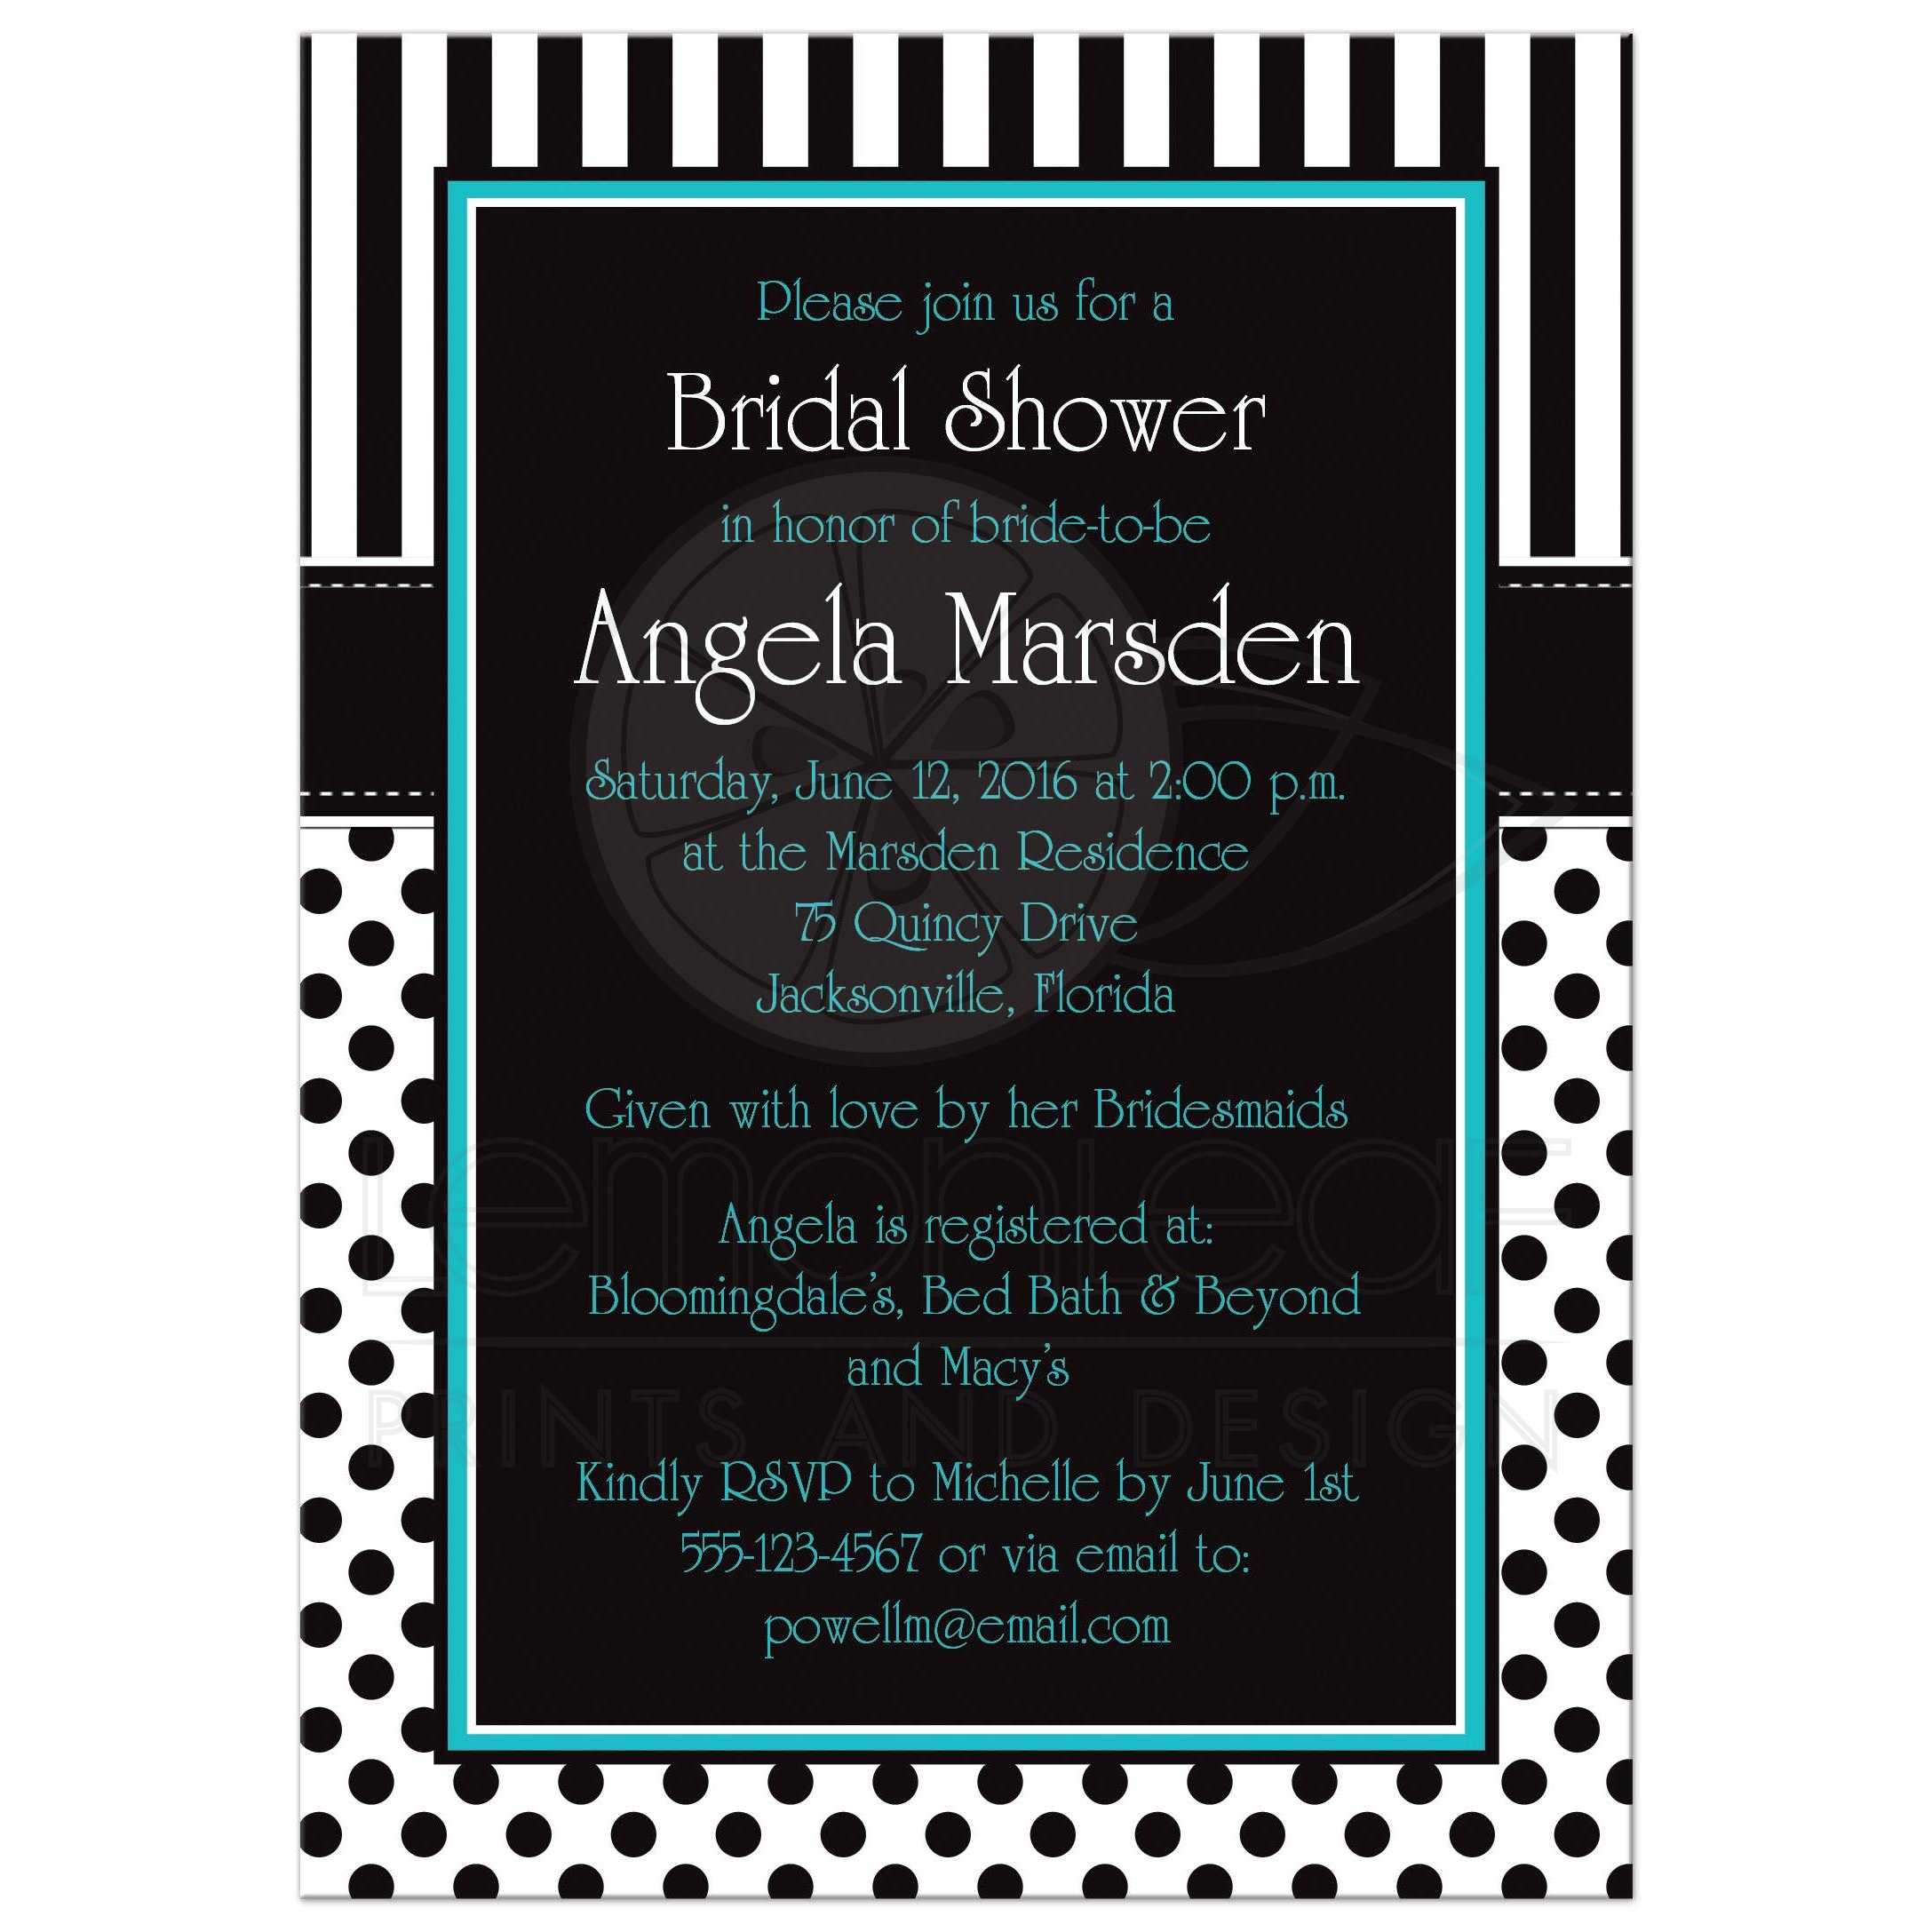 Bridal shower invitation black white turquoise polka dots stripes black and white striped bridal shower invites with polka dots and turquoise or teal filmwisefo